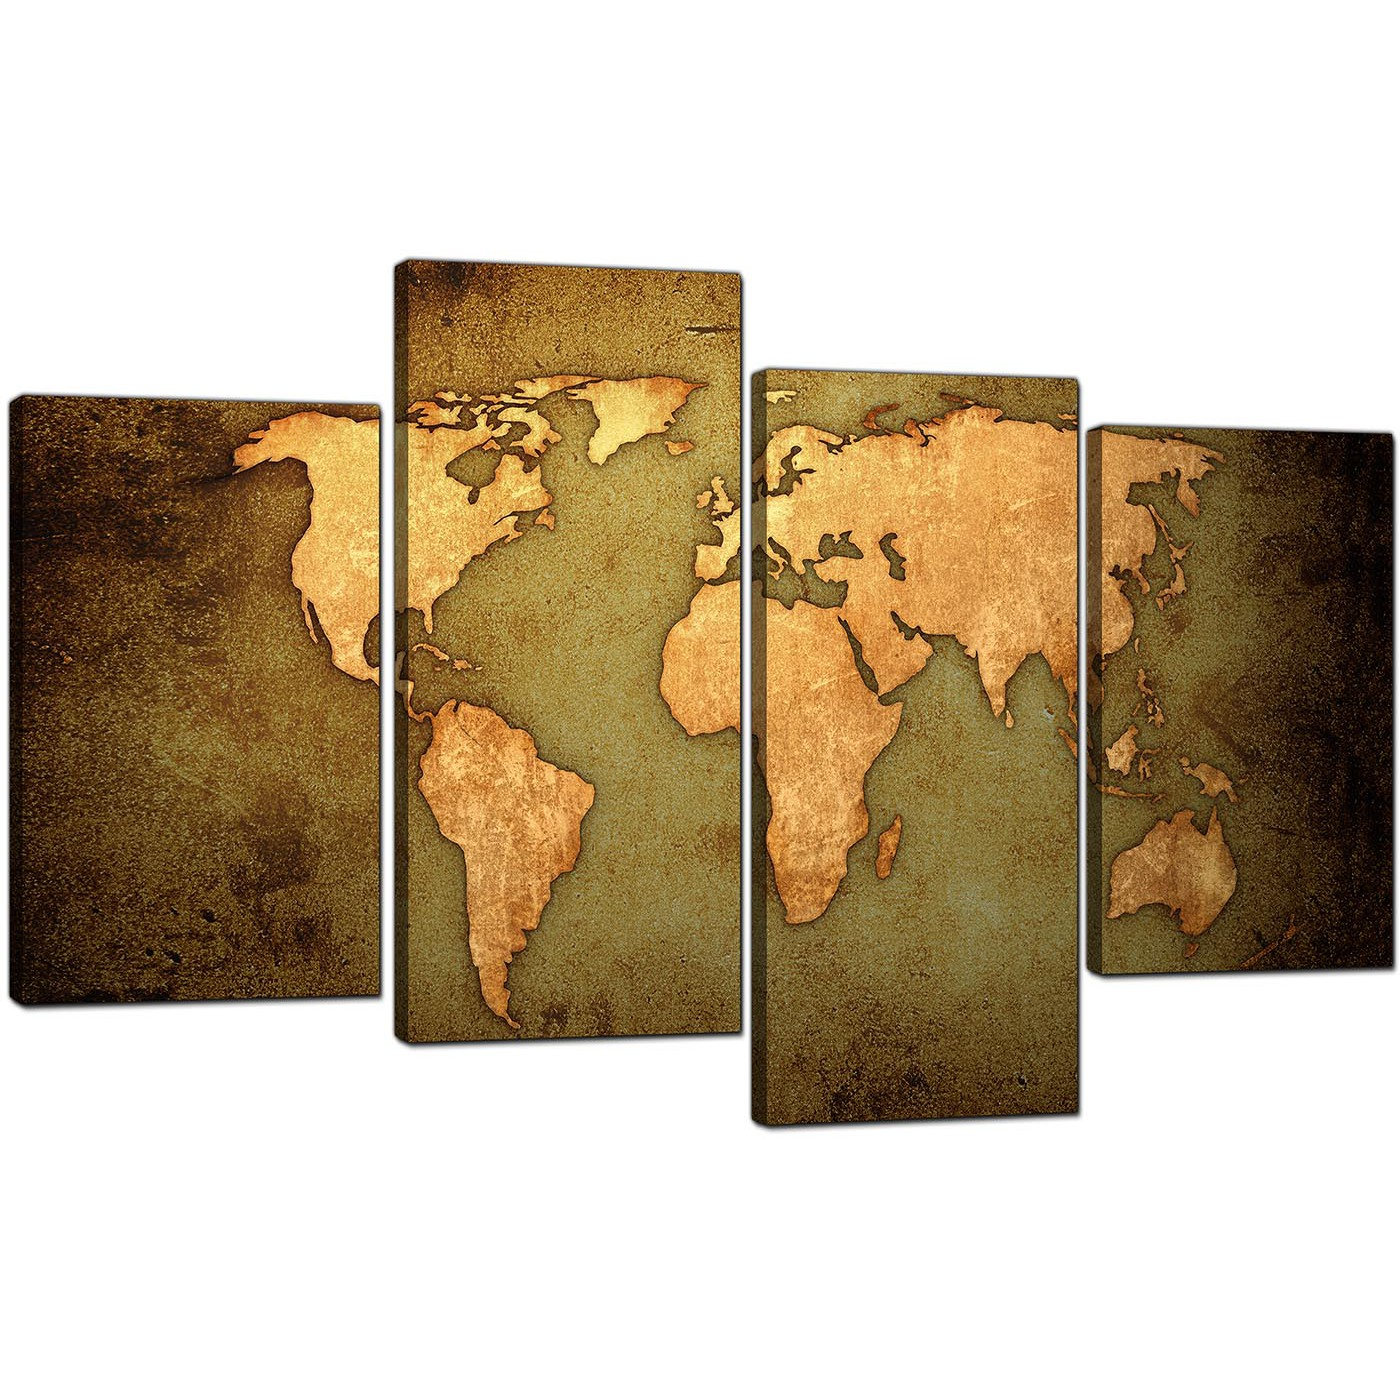 display gallery item 3 world map canvas art in antique style for office display gallery item 4